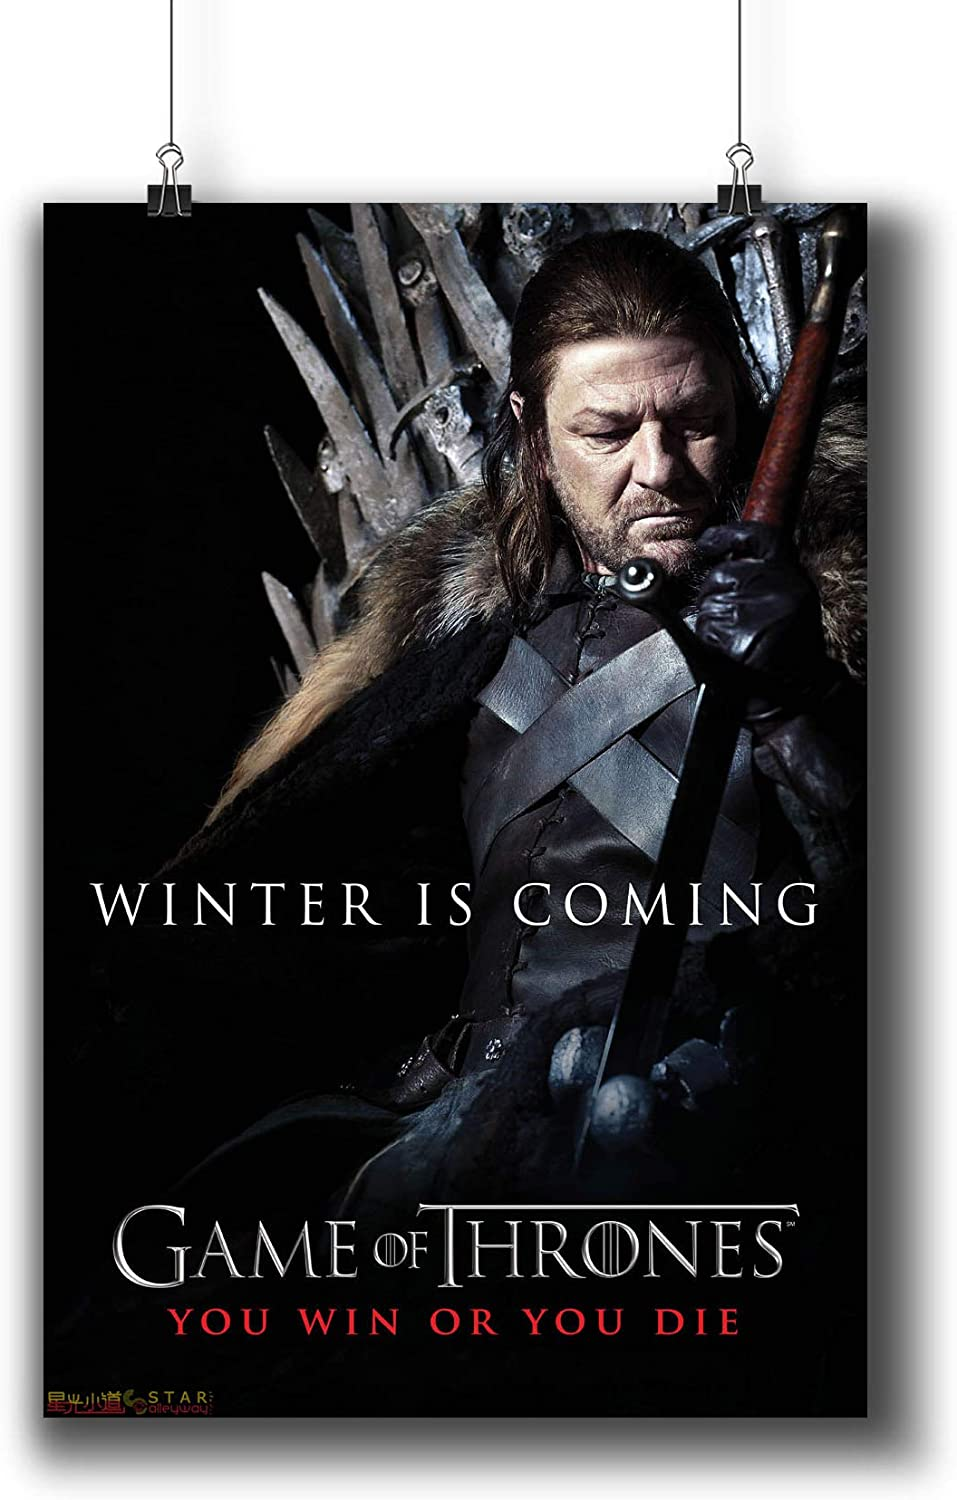 Game of Thrones TV Series Poster Small Prints 694-105 Ned Eddard Stark,Wall Art Decor for Dorm Bedroom Living Room (A4 8x12inch 21x29cm)